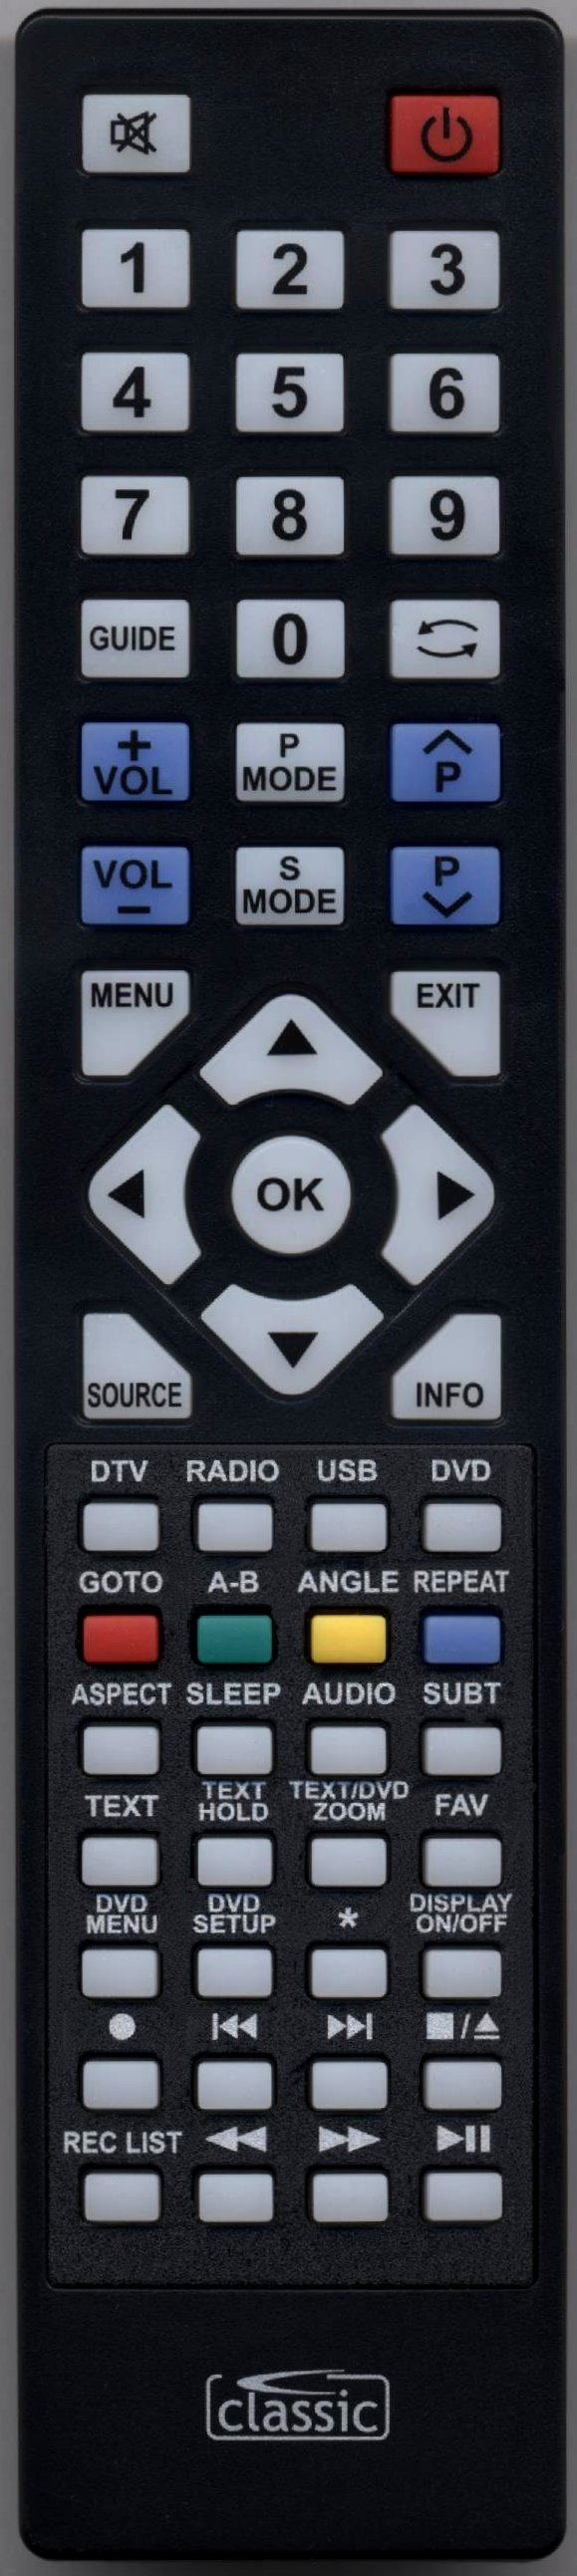 BLAUPUNKT 236/207I-GB-3B-HP-UK Remote Control Alternative